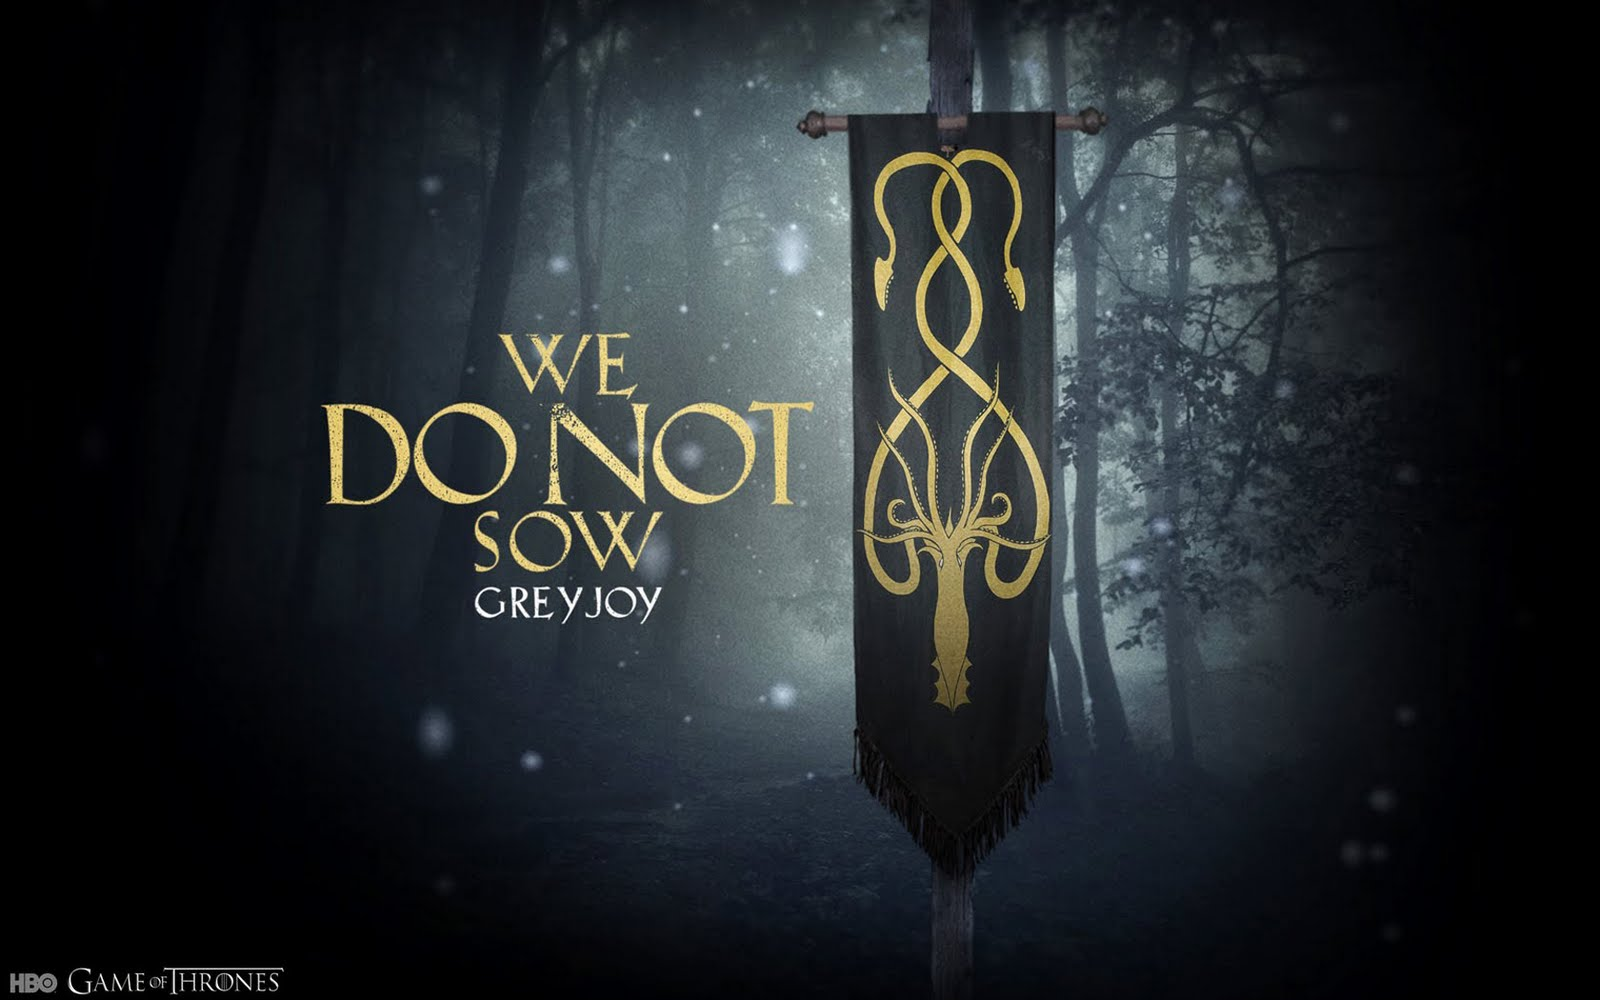 game of thrones hd widescreen wallpaper download 2 game of thrones hd 1600x1000